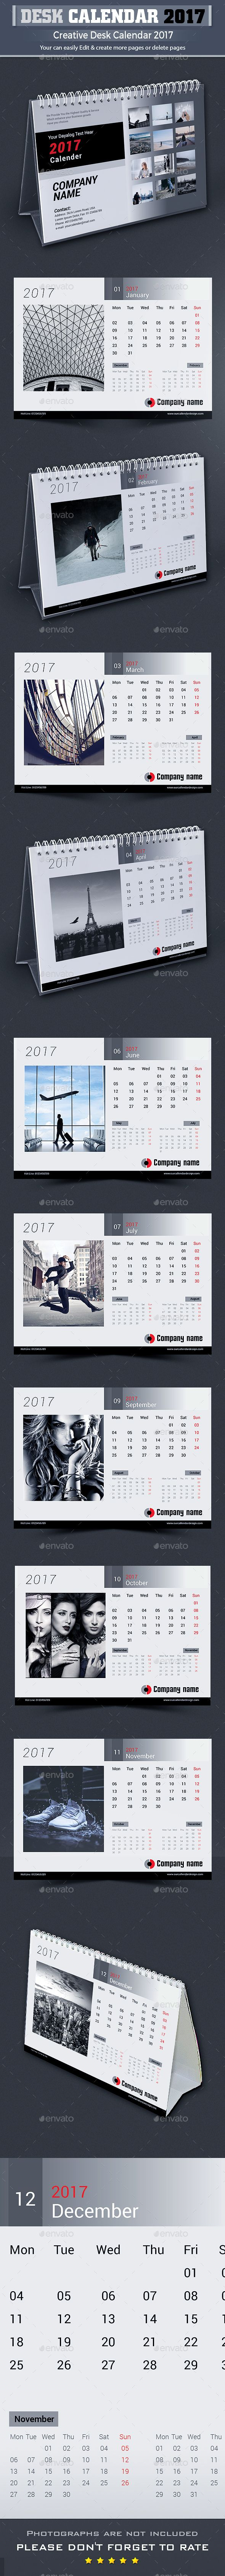 Desk Calendar 2017 Template InDesign INDD